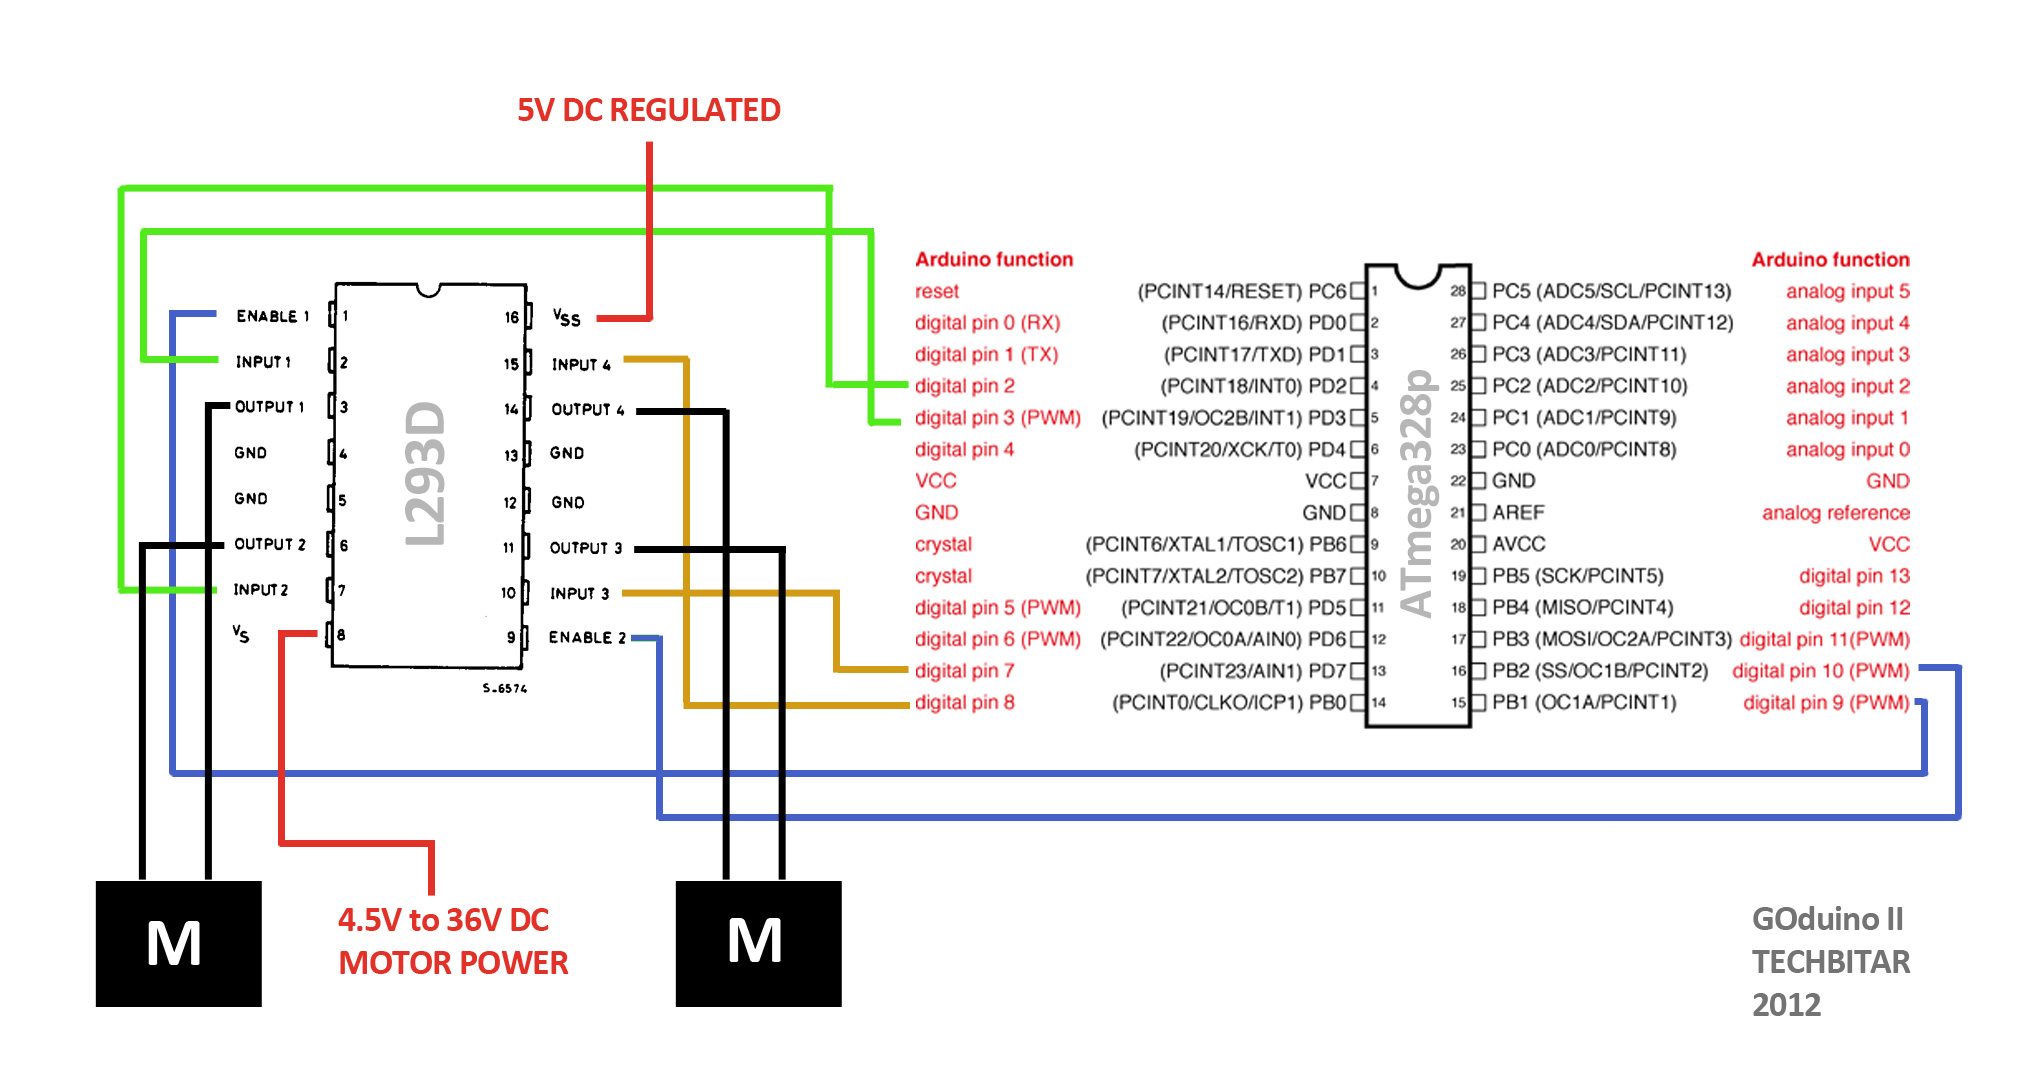 Pingservoattach6 Causing Dc Motors Conected To L239d Not Spin Constant Speed Pwm Motor Control Circuit Schematic Http Instructablescom Files Orig Fy2 Szkb H0oj5nni Fy2szkbh0oj5nni